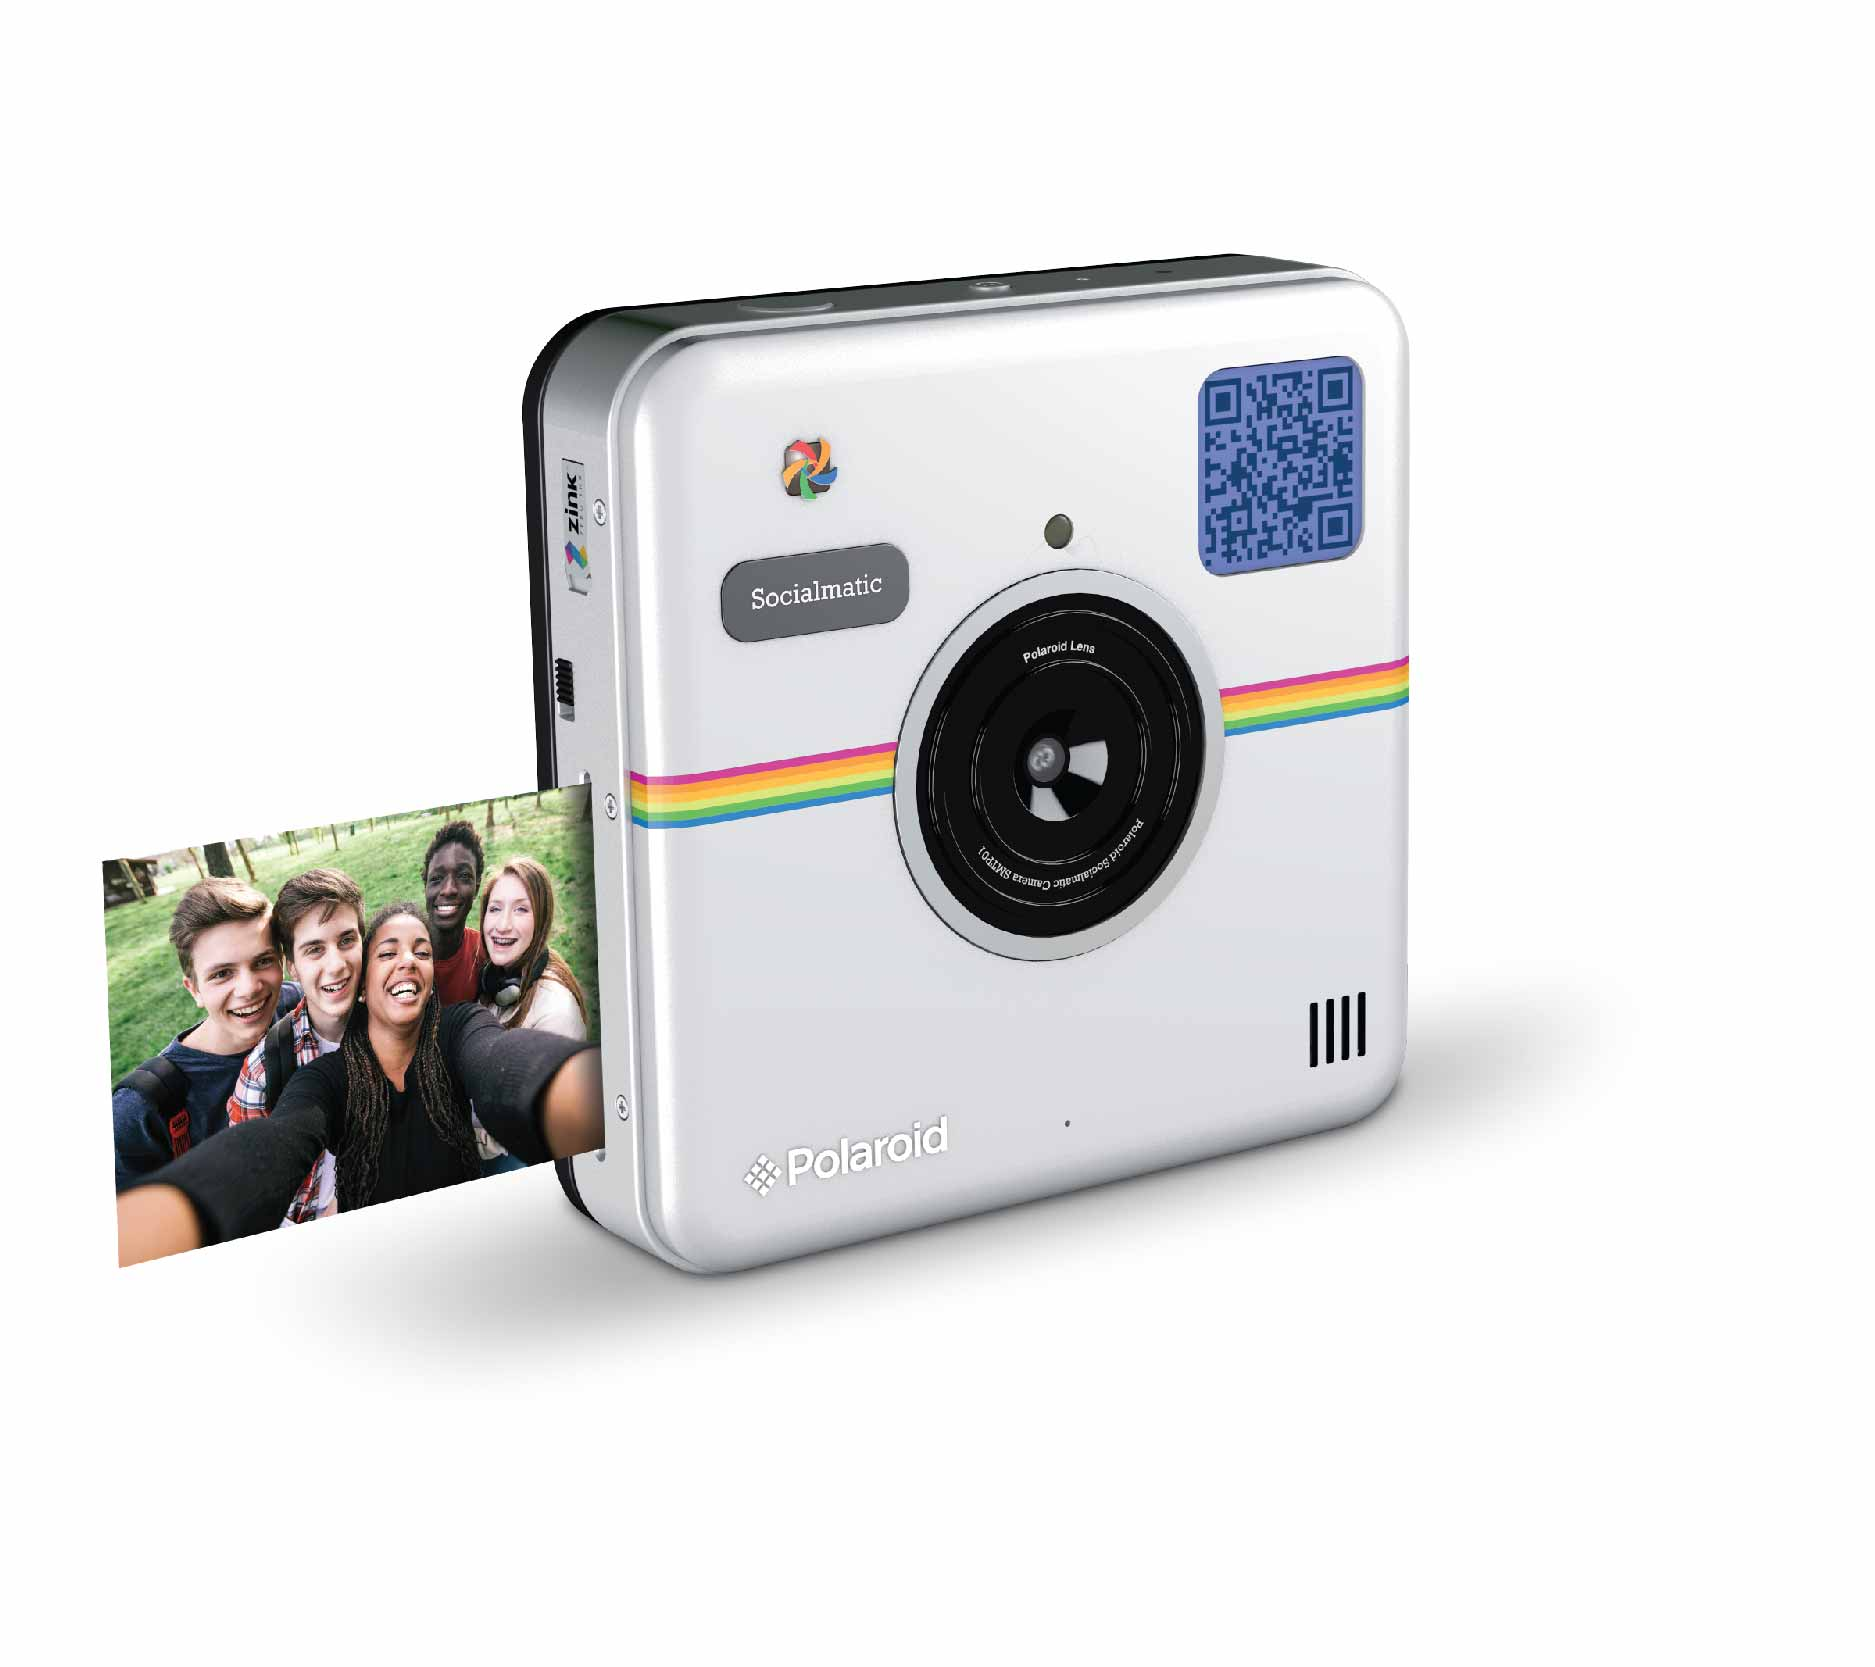 Holiday gift ideas for chic and trendy women techgiftguides2015 polaroid socialmatic instant digital camera negle Image collections